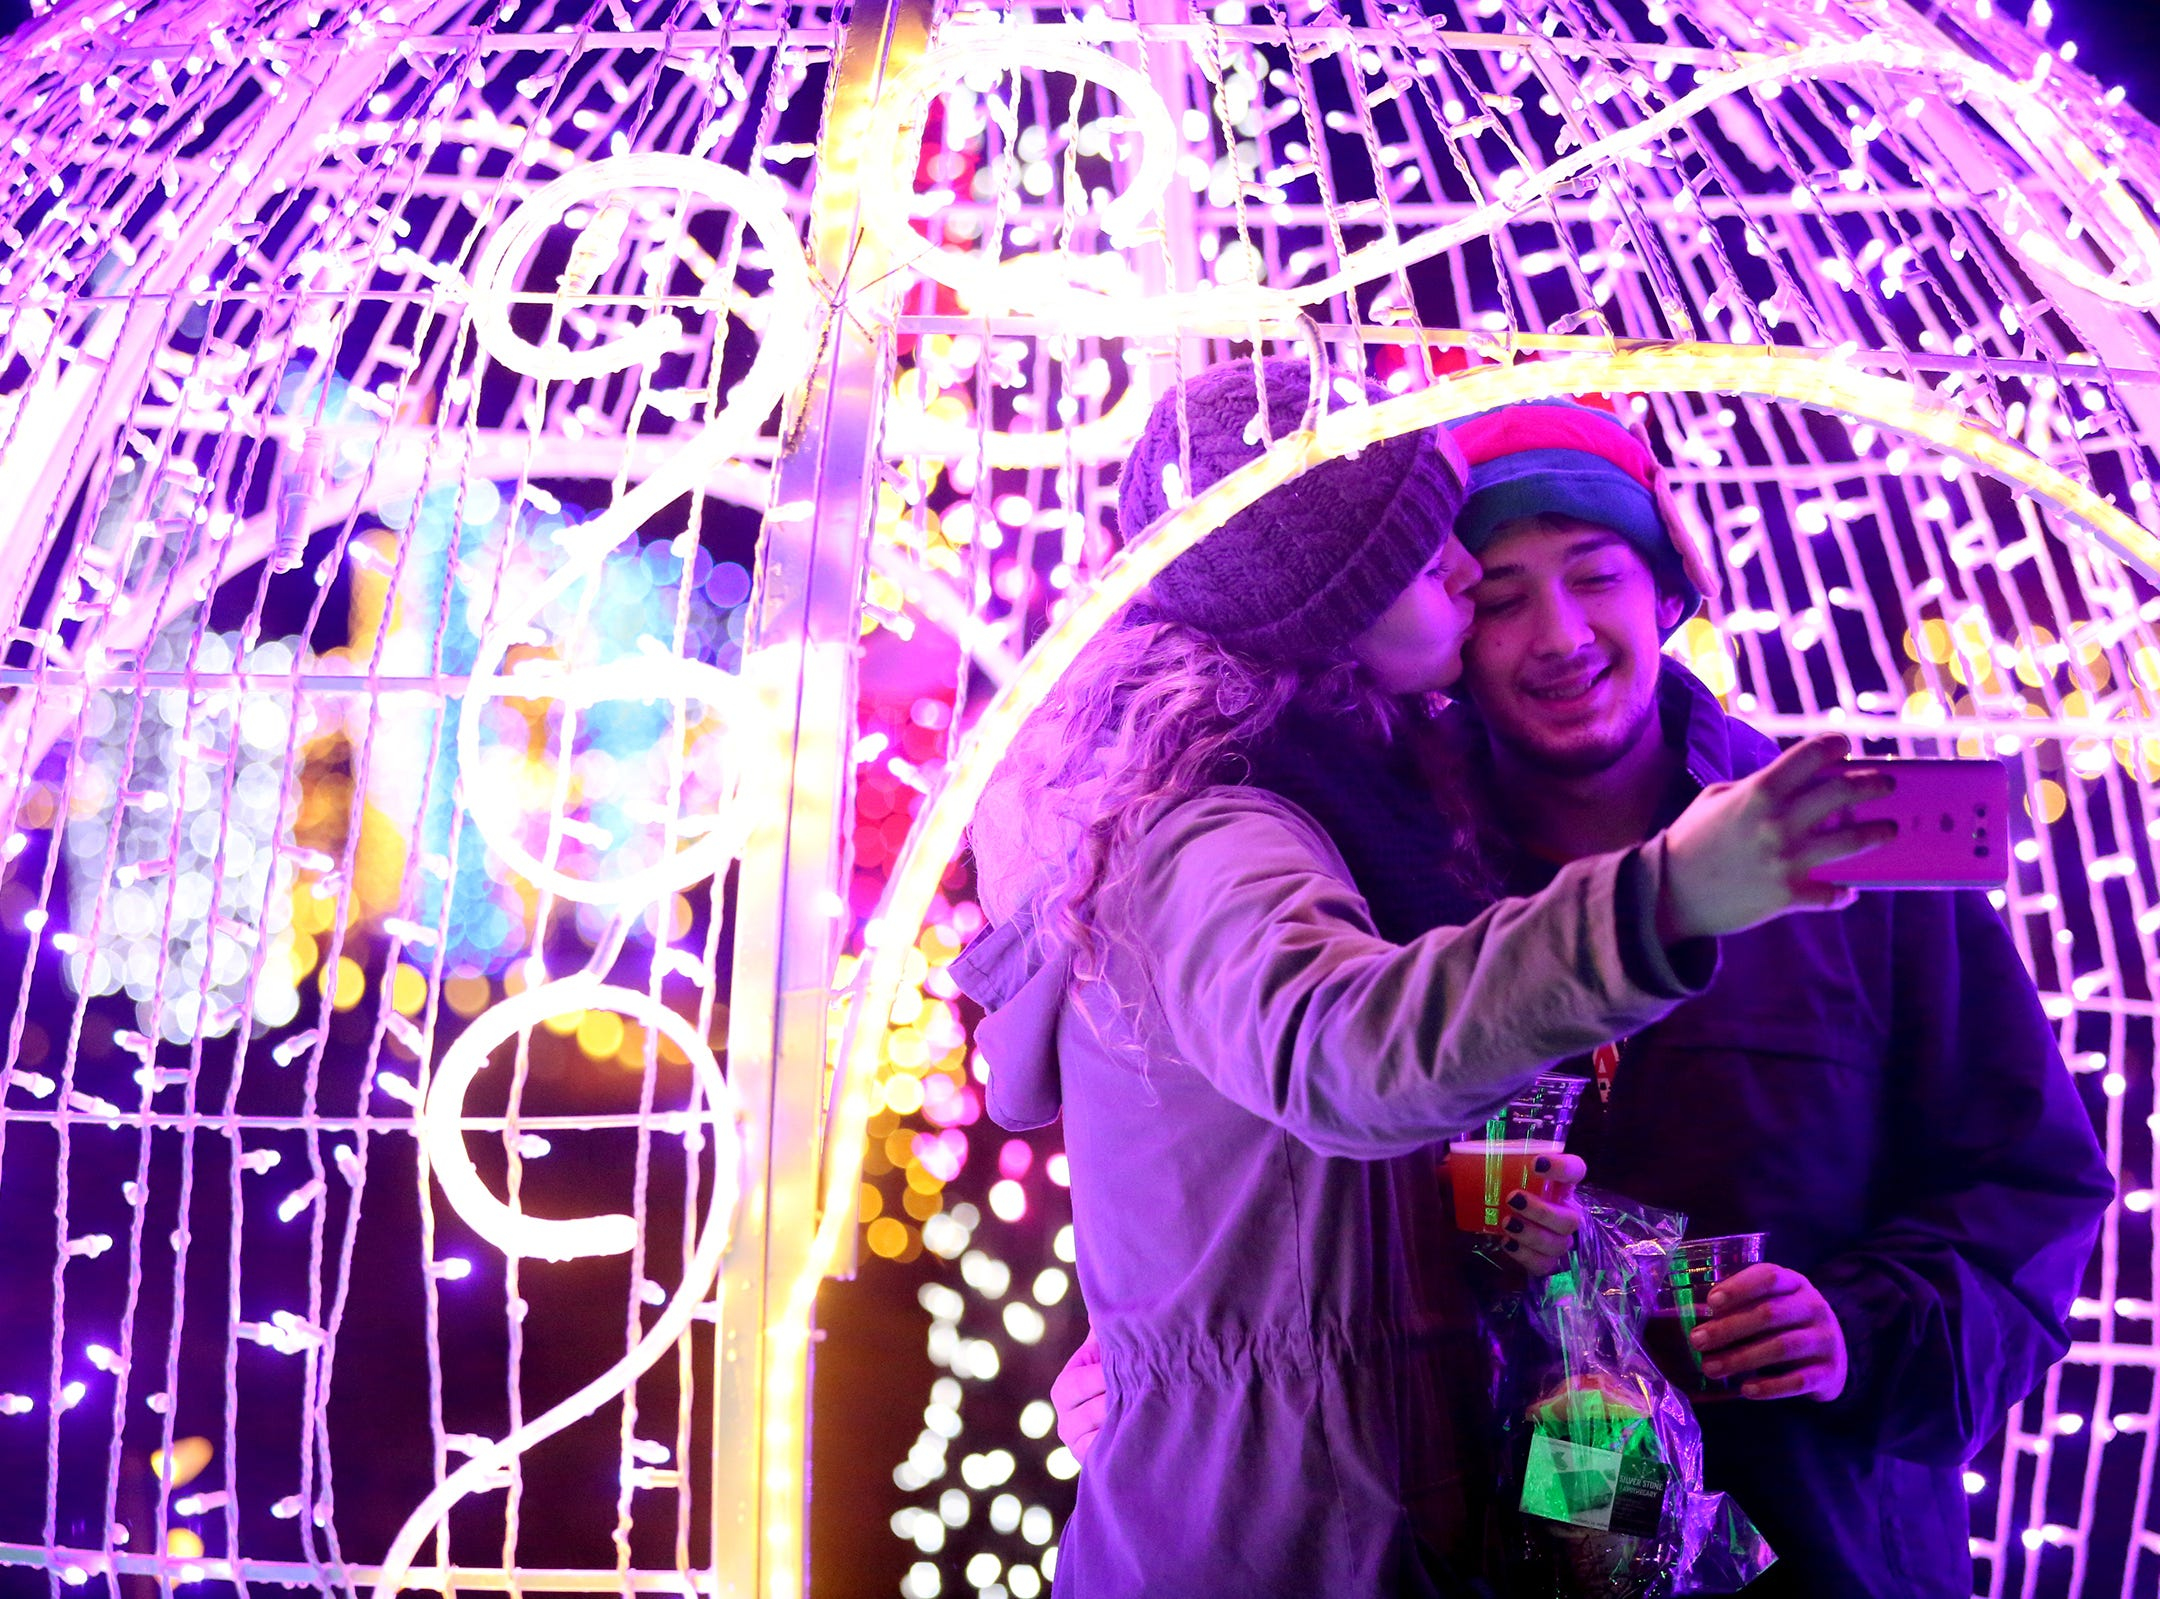 Mackenzie Gray and her boyfriend Michael Guerrero take a selfie during Christmas in the Garden at the Oregon Garden Resort on Wednesday, Nov. 28, 2018, in Silverton. The winter wonderland, which features one million lights, is on display through Dec. 31.